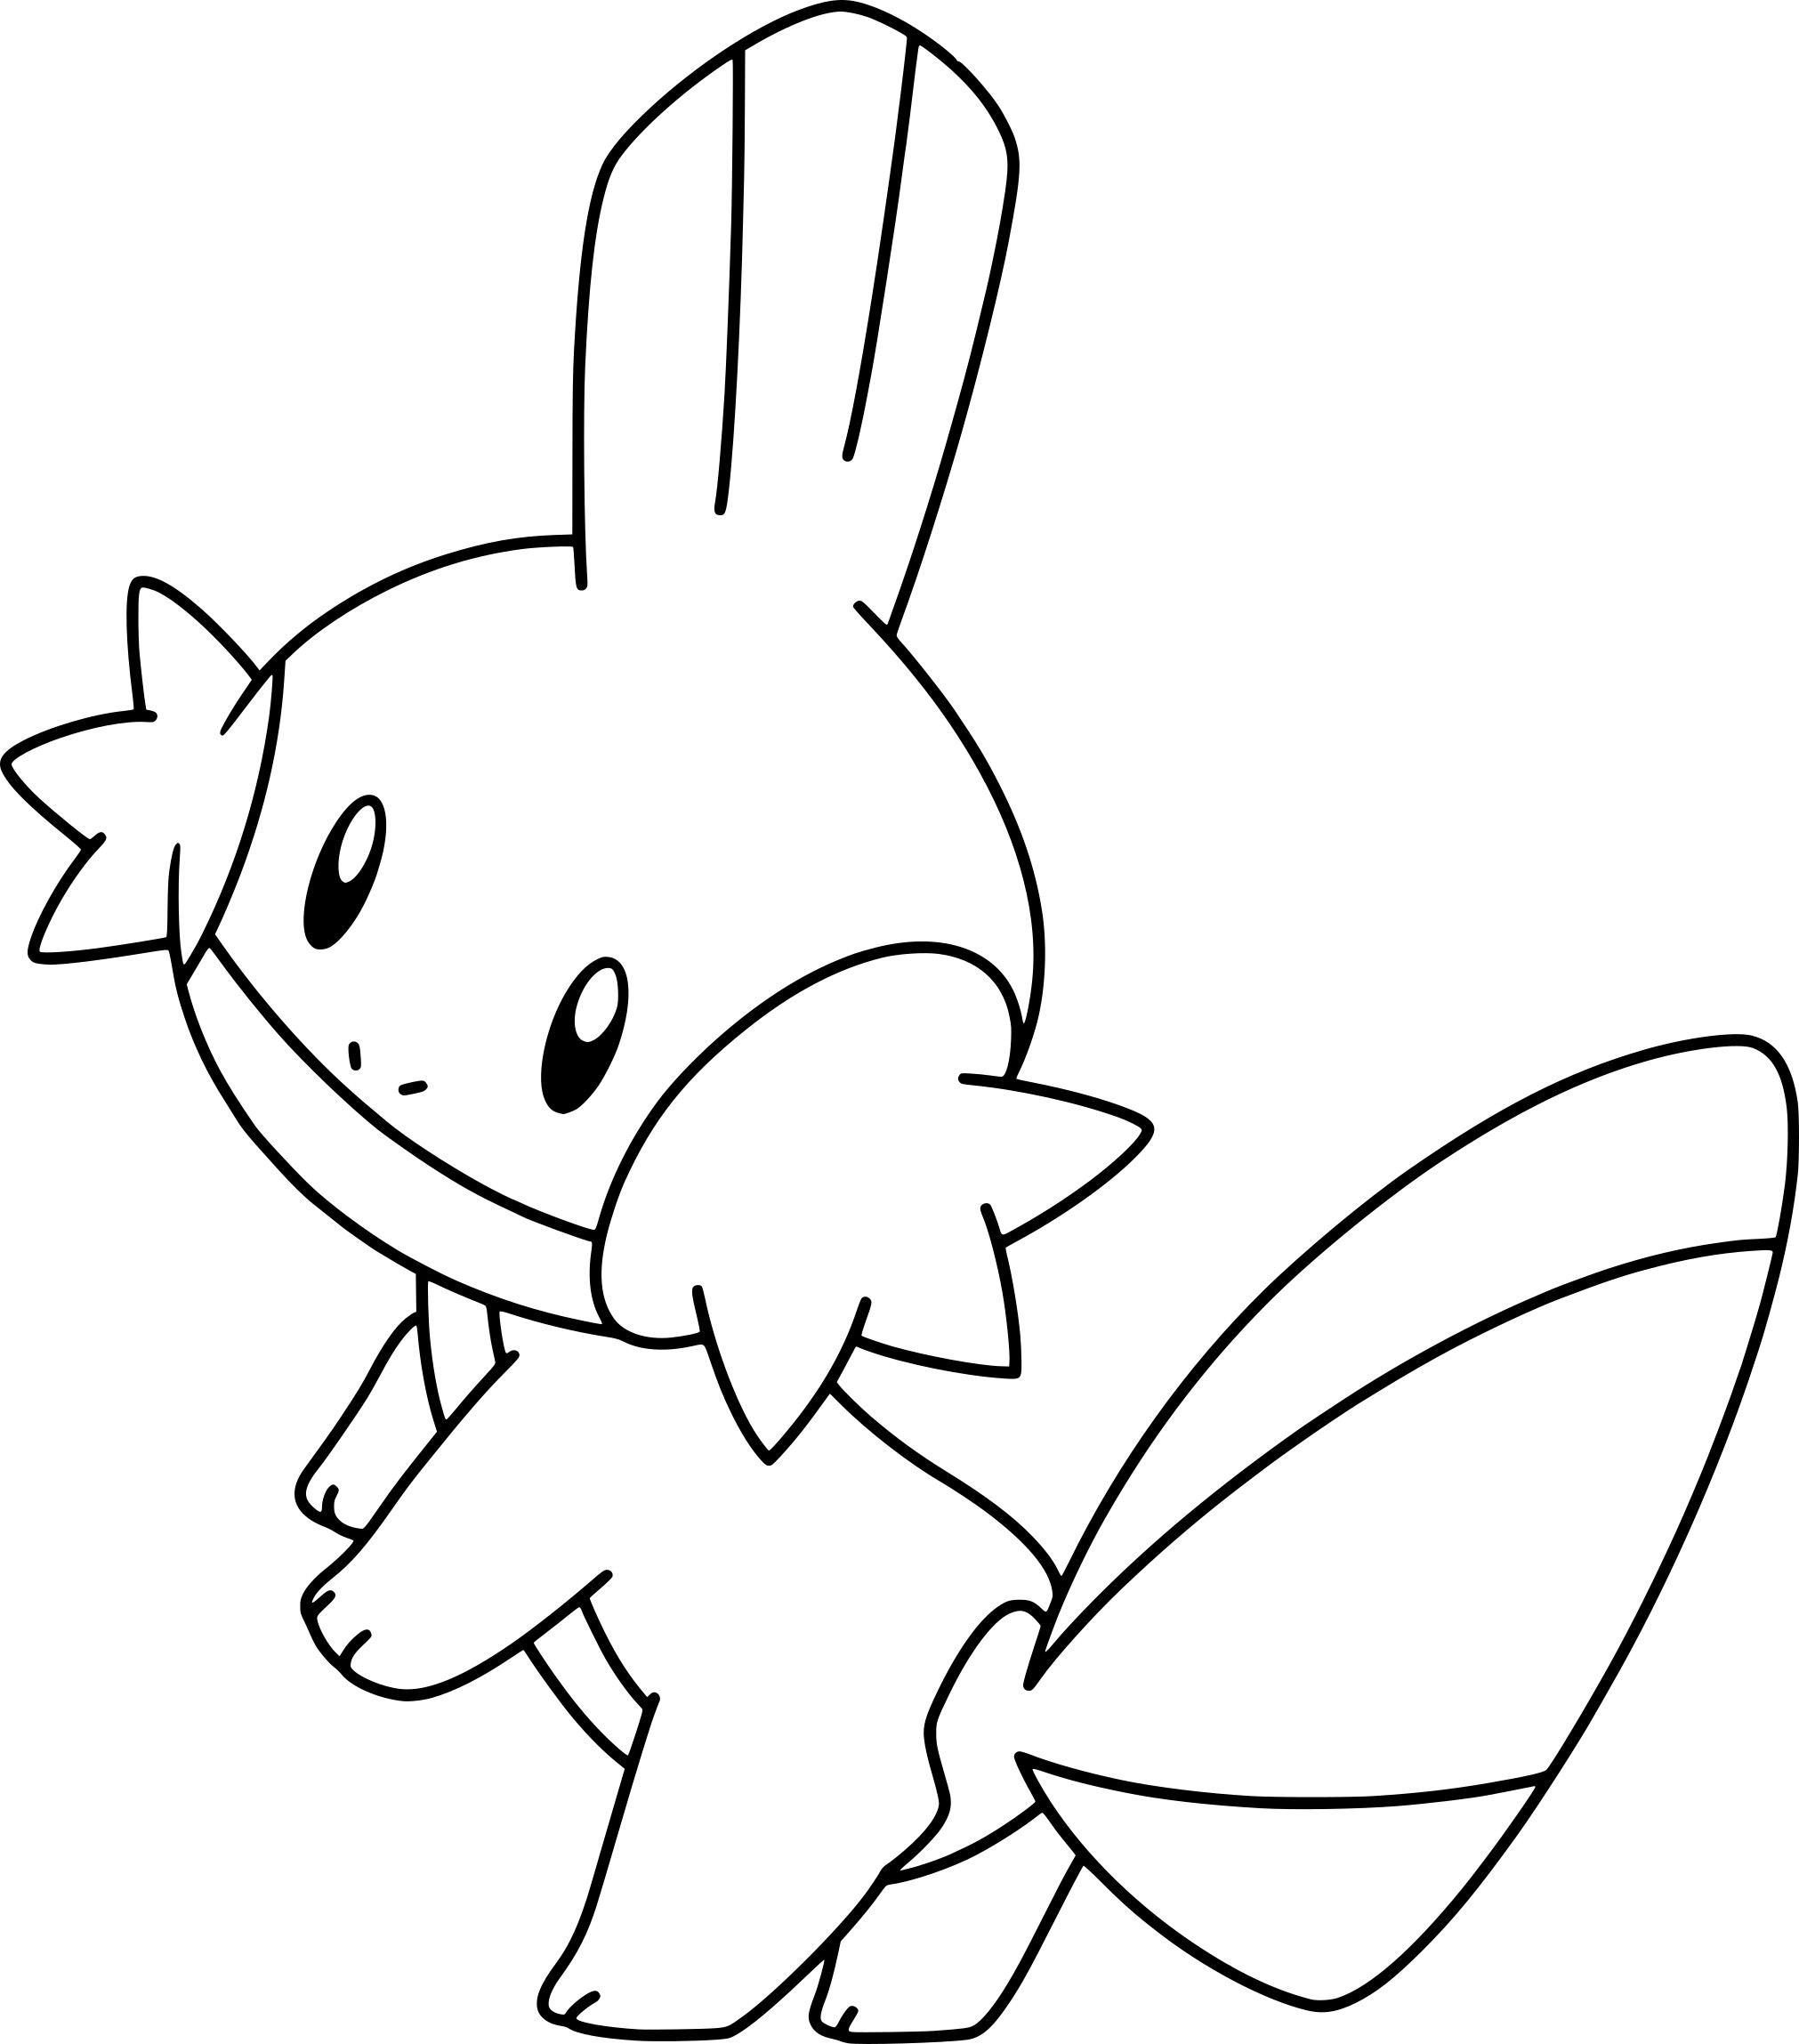 Coloriage gobou pokemon imprimer - Dessins de pokemon ...